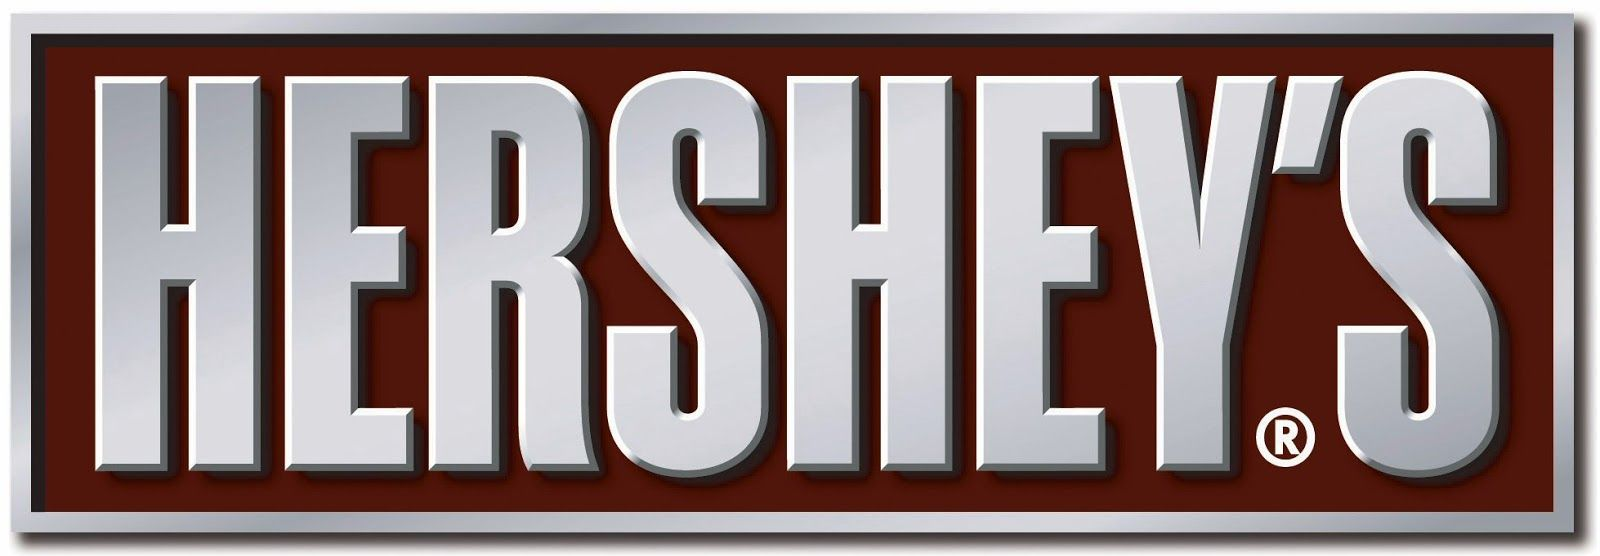 WHAT'S NEW! CANADA: The Hershey Company: The Man and the Bar that star...